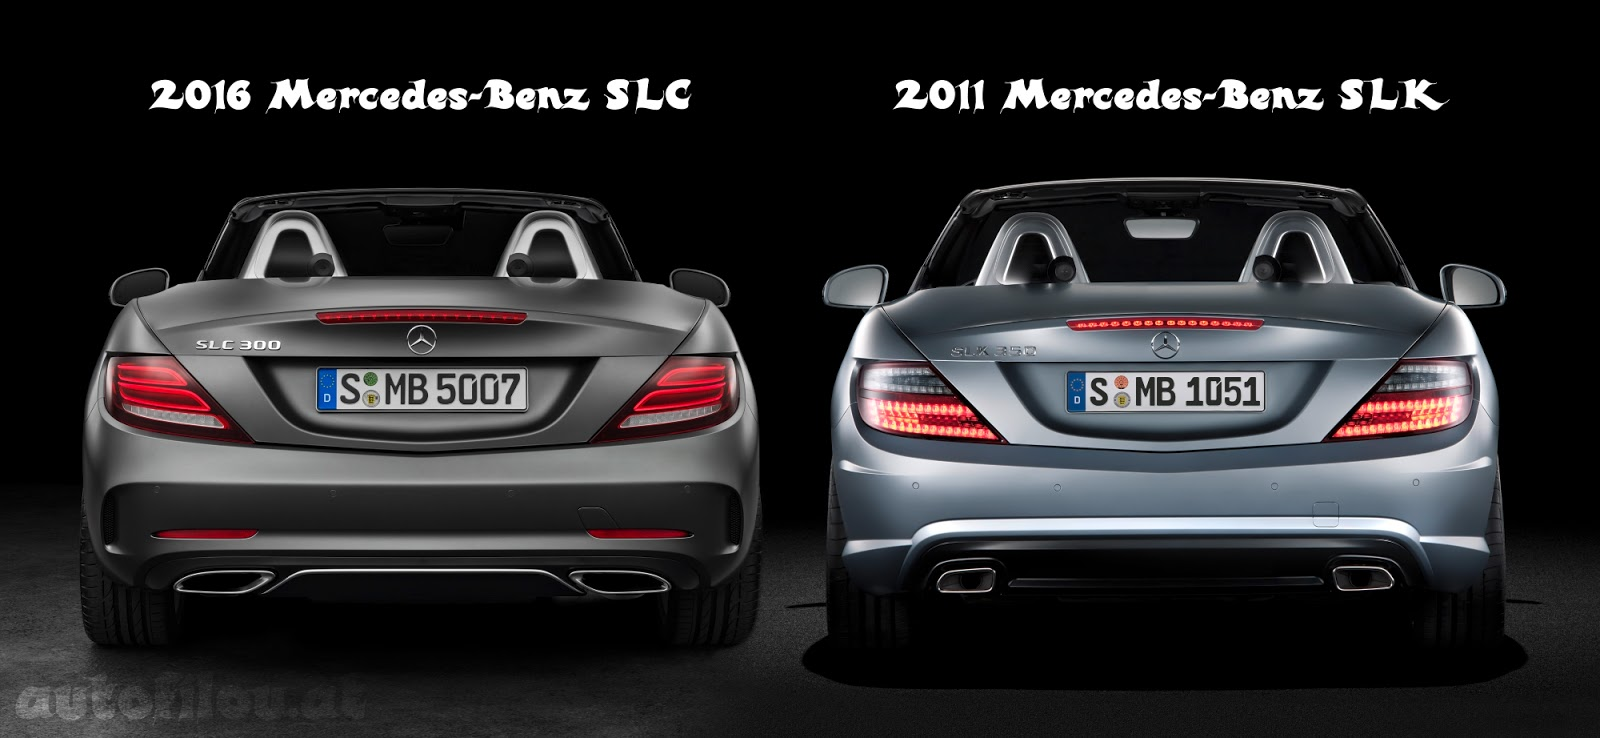 Portland roadster show coupons autos post for Promo code for mercedes benz accessories